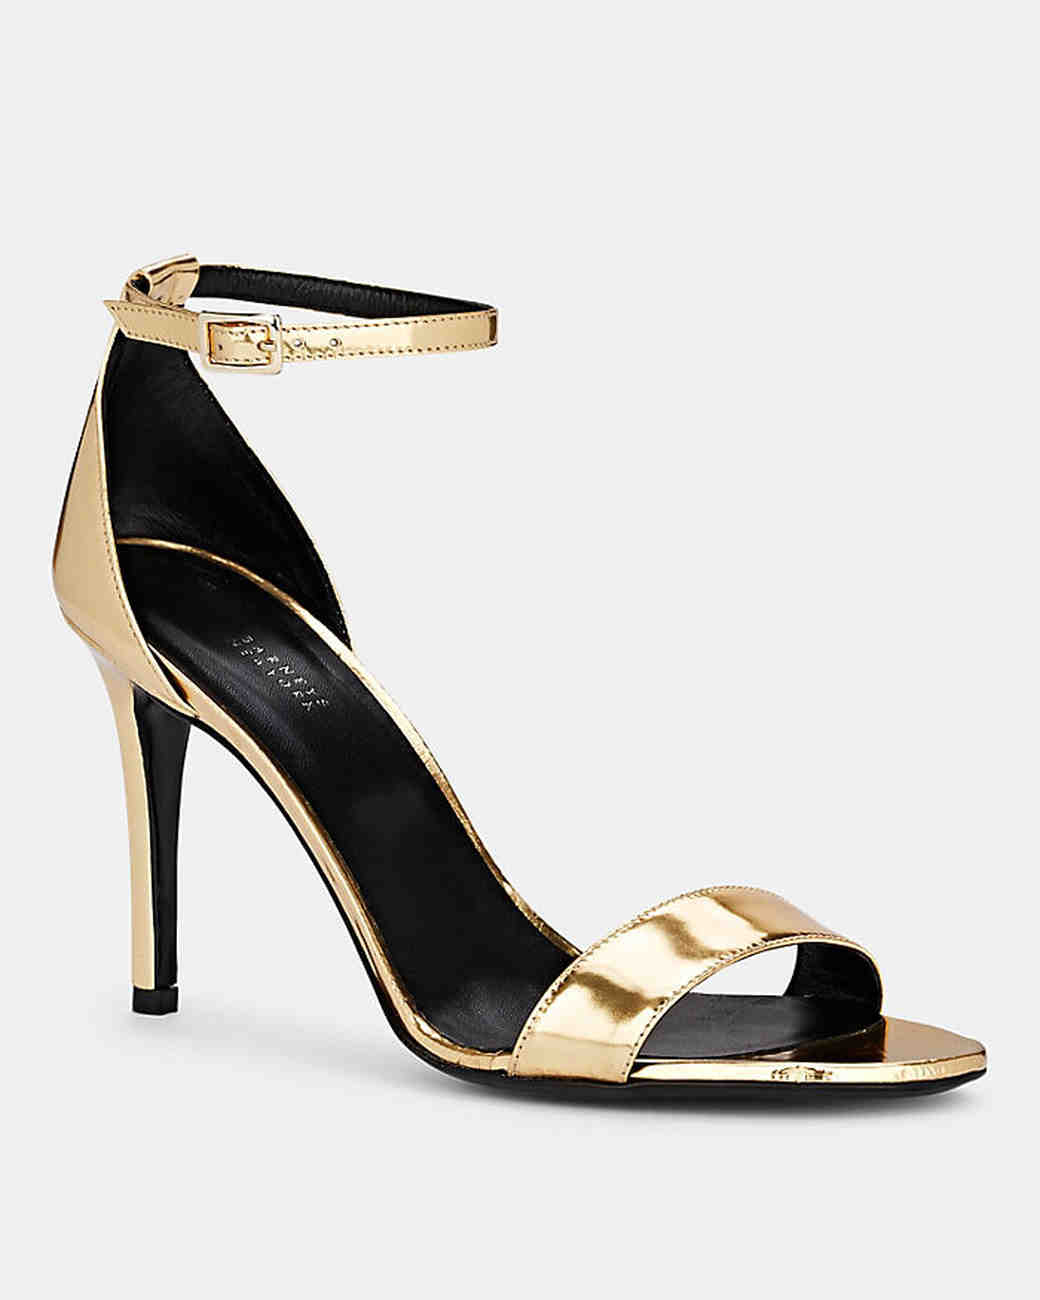 patent leather ankle-strap sandals bridesmaid shoes